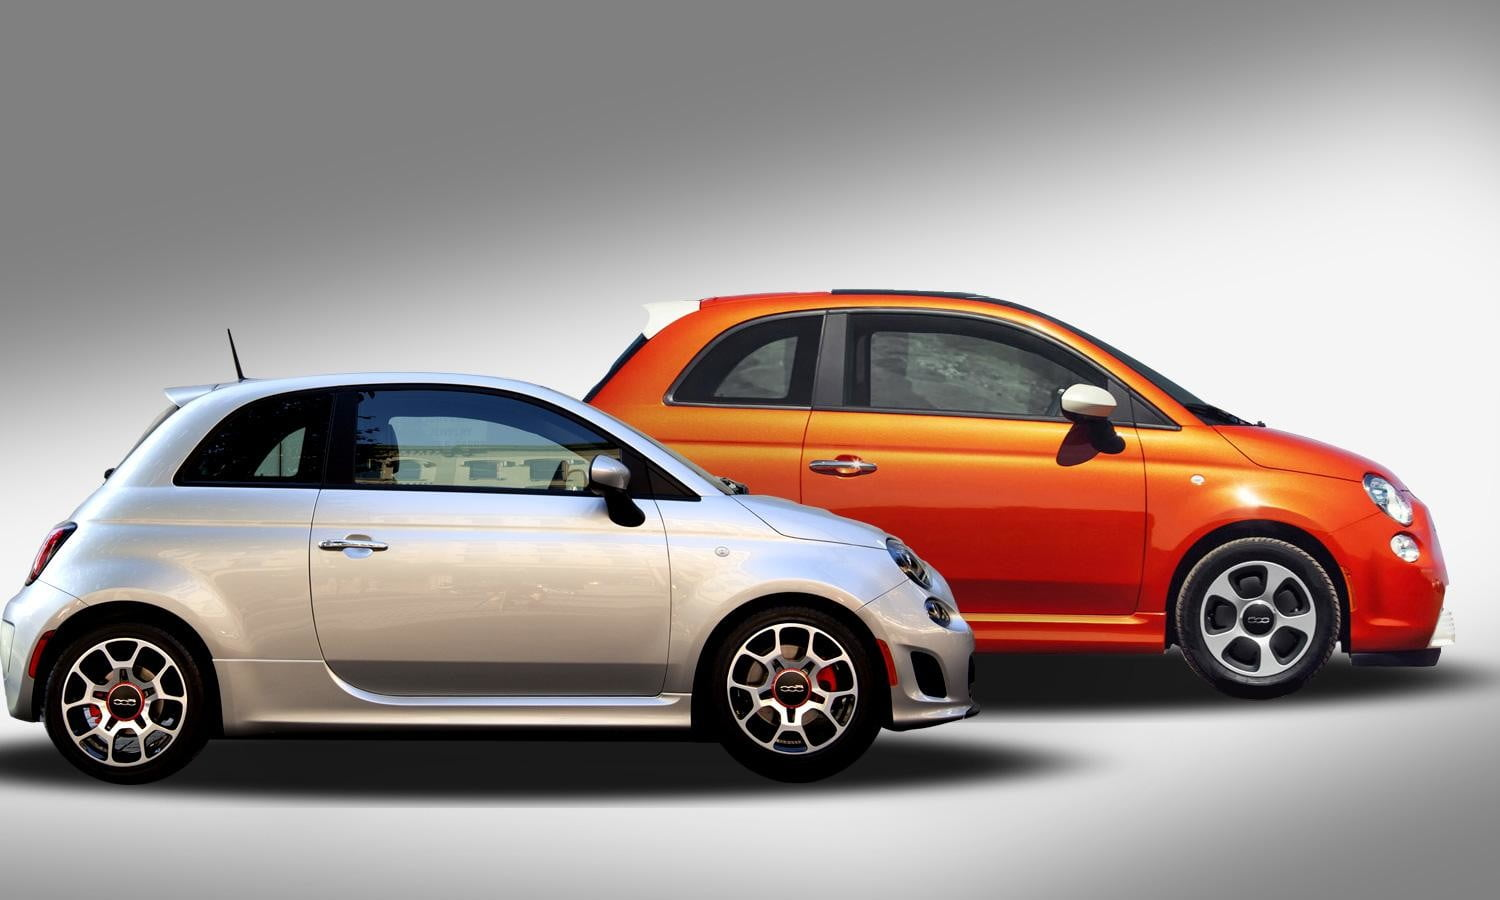 Same body, very different guts: Fiat 500 Turbo and Fiat 500e EV square off